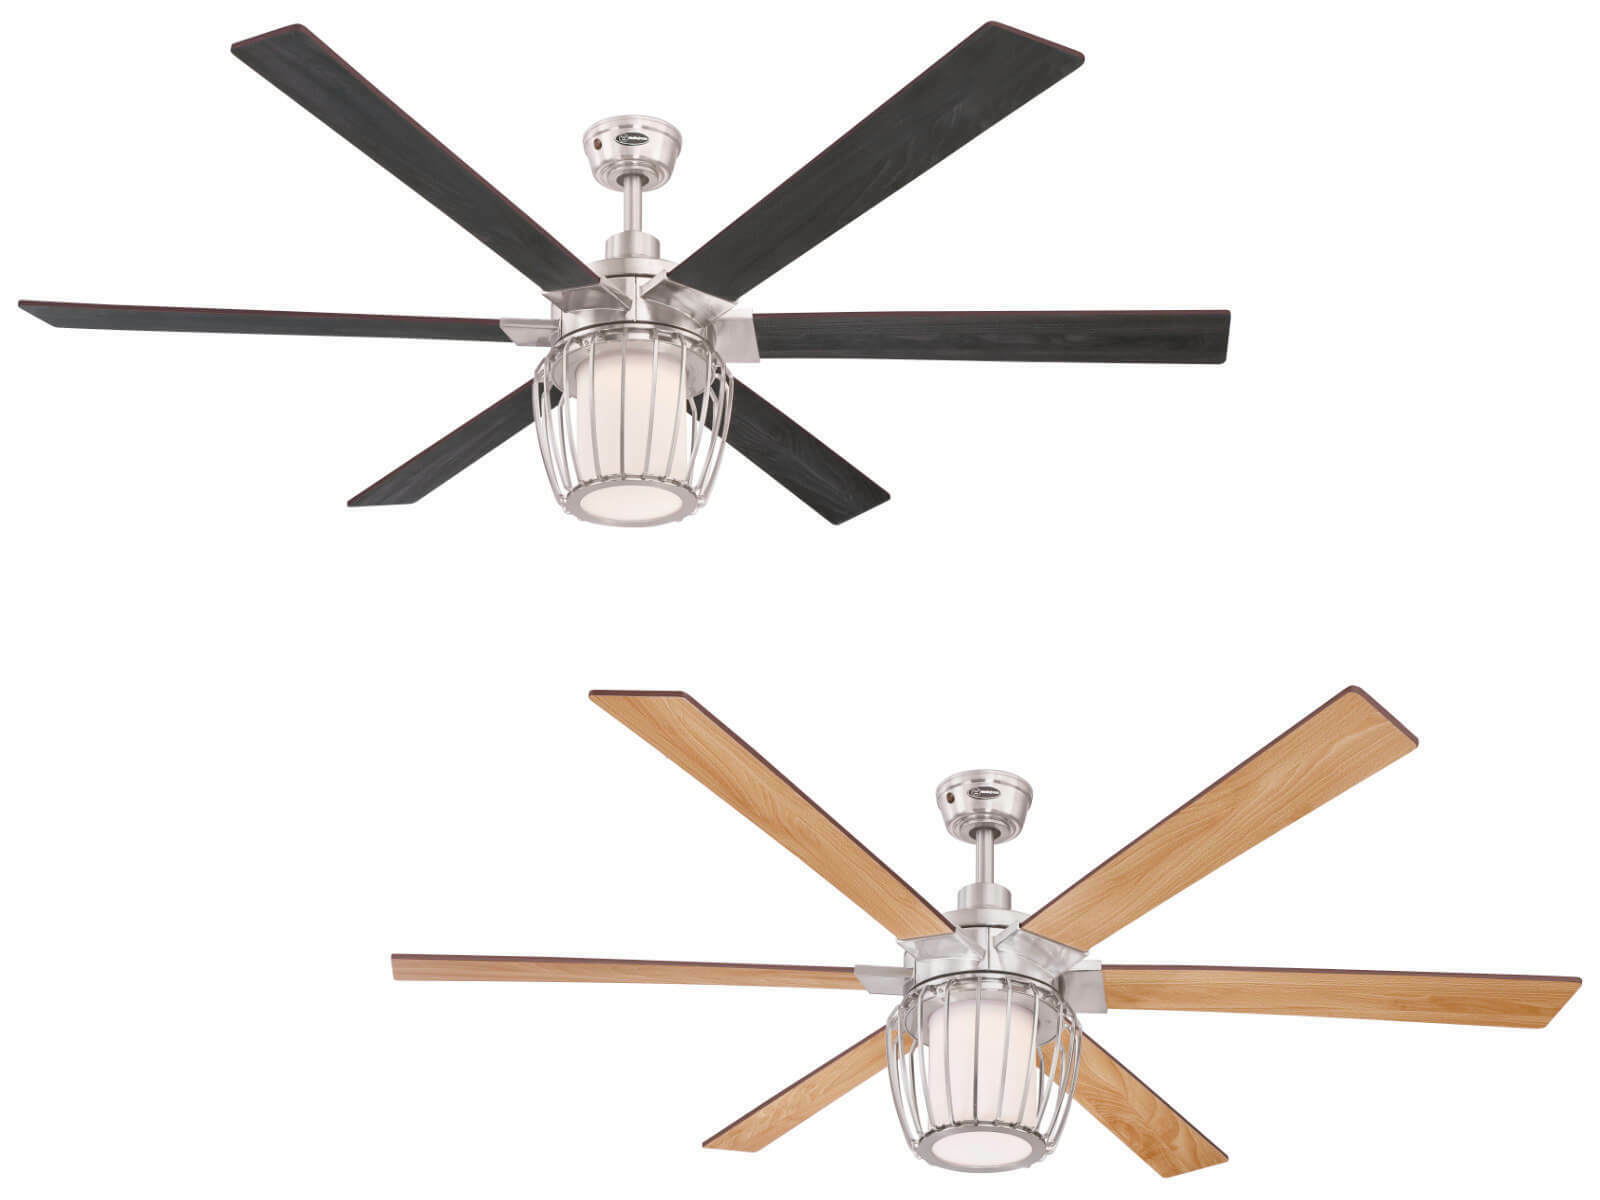 Ceiling Fan With Led Lighting And Remote Control Westinghouse Willa 153 Cm For Sale Online Ebay